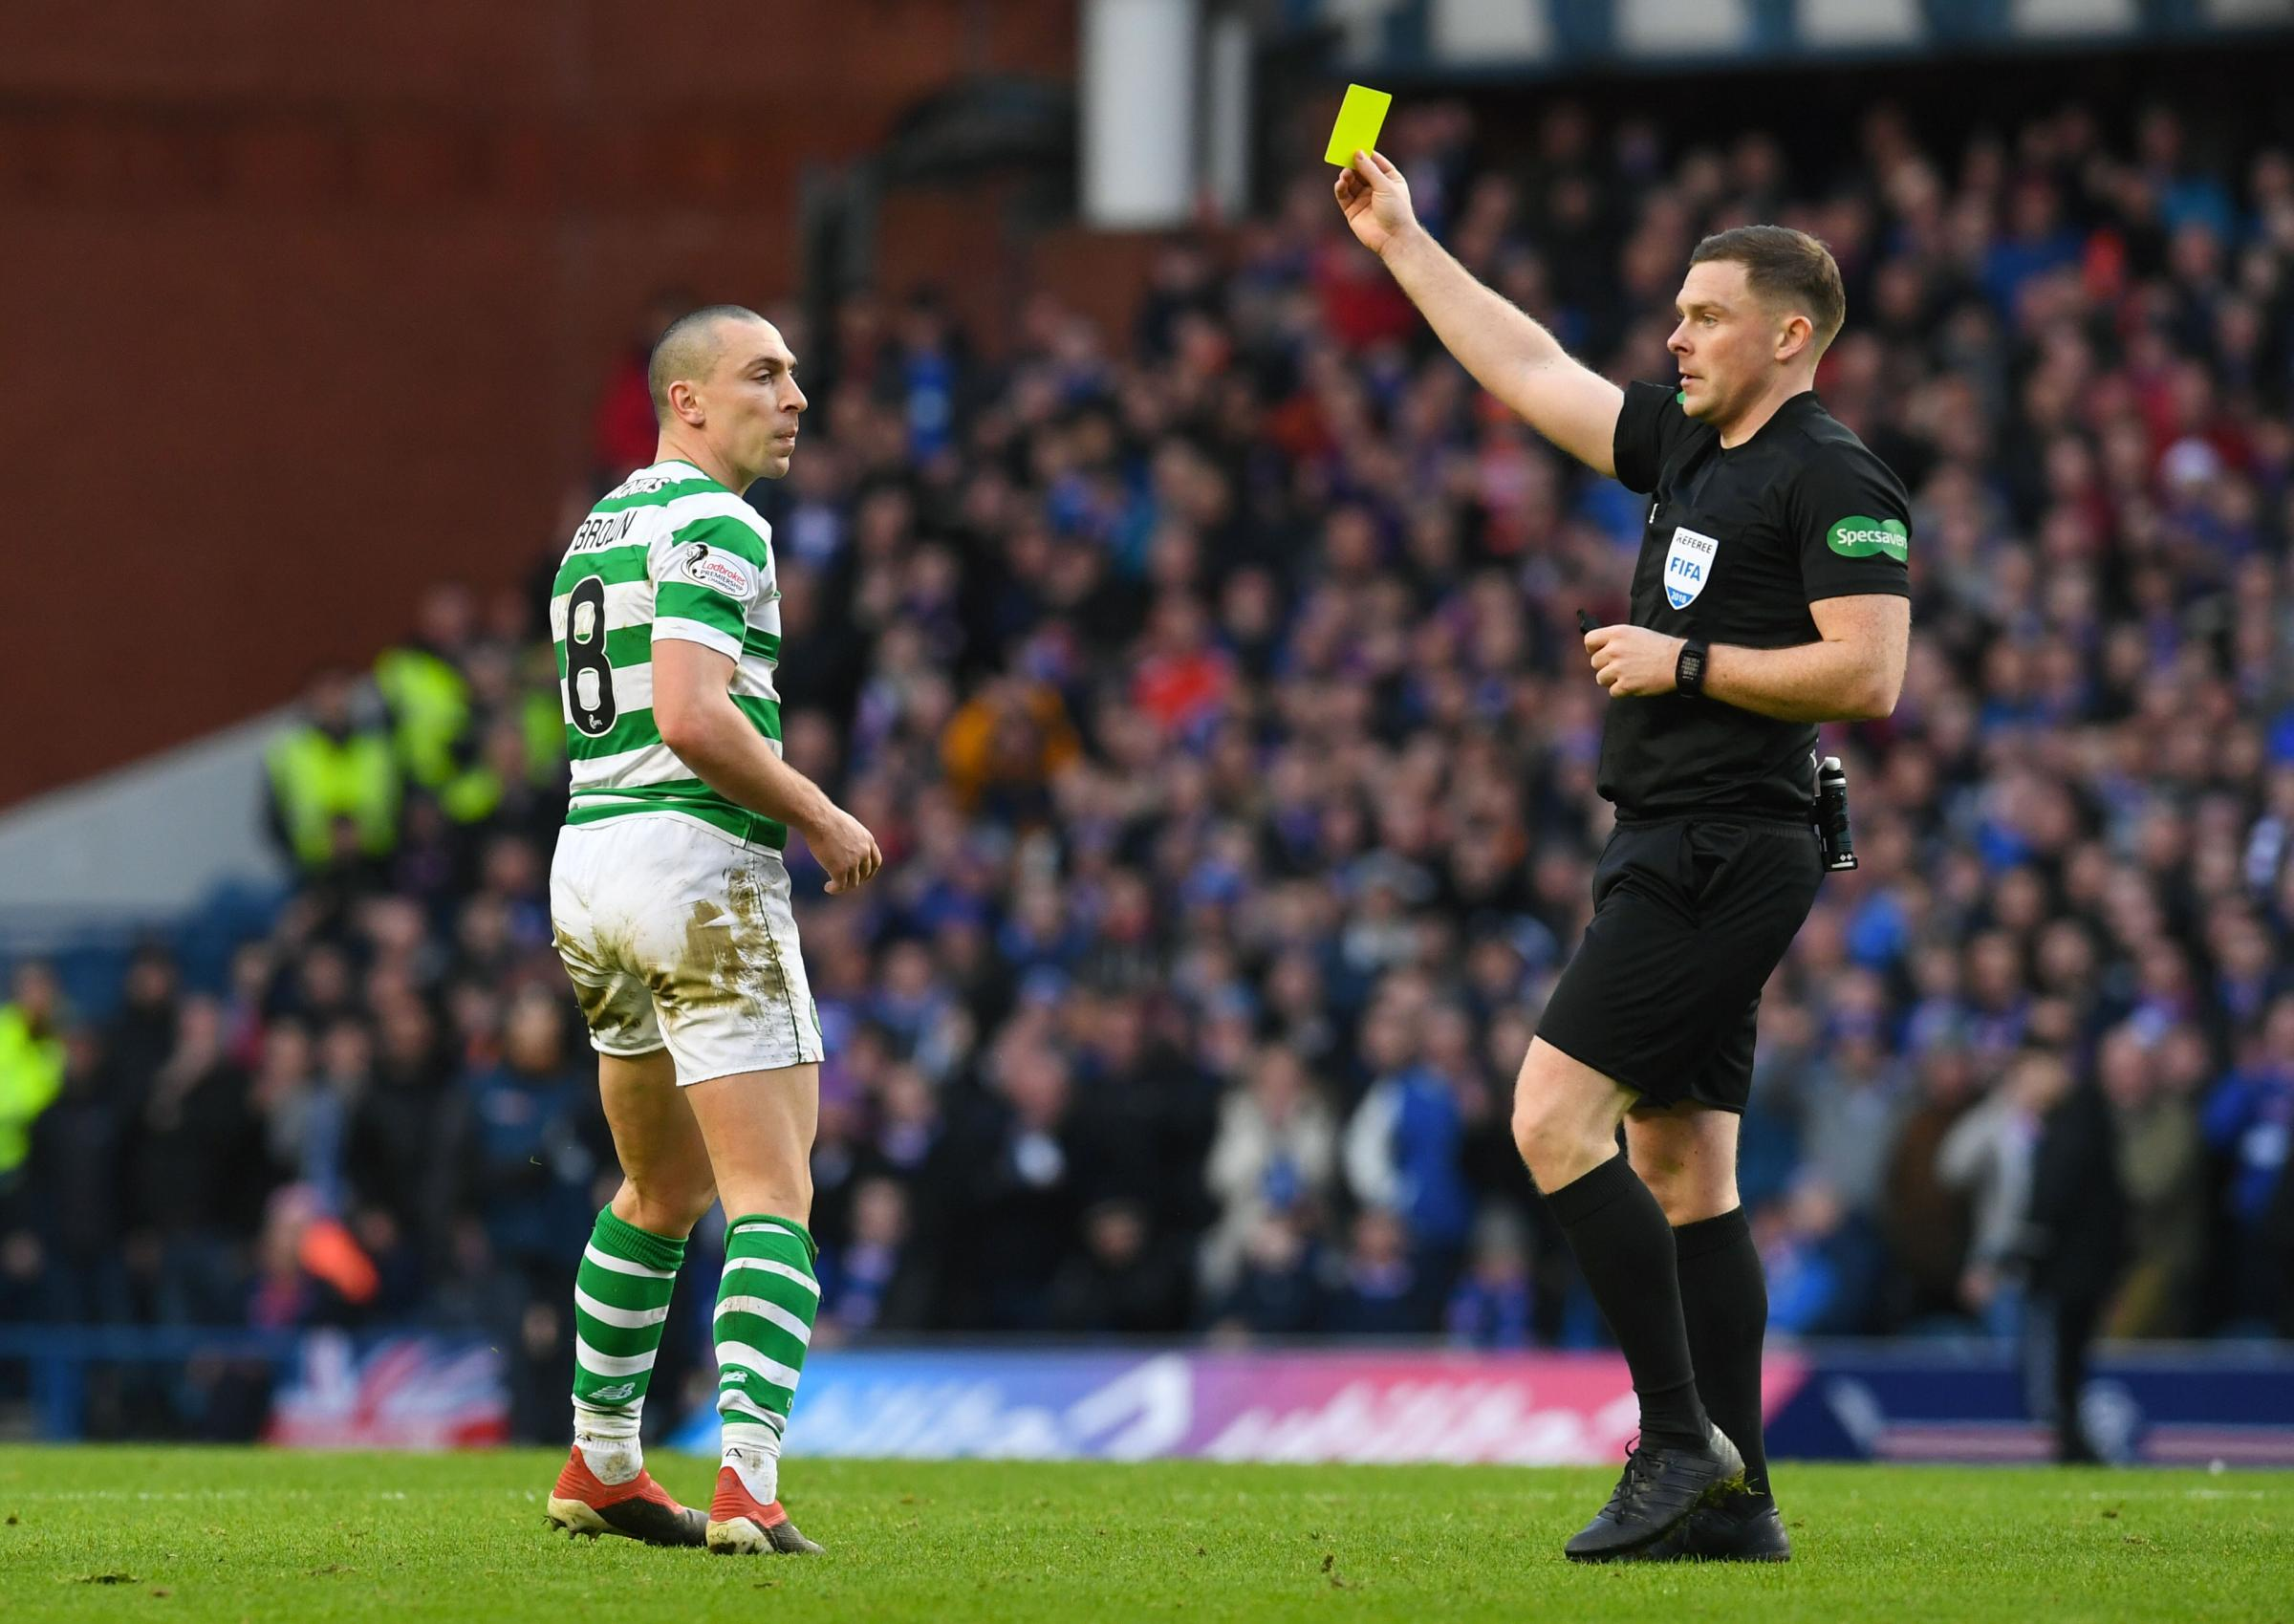 Celtic's Scott Brown is booked by referee John Beaton